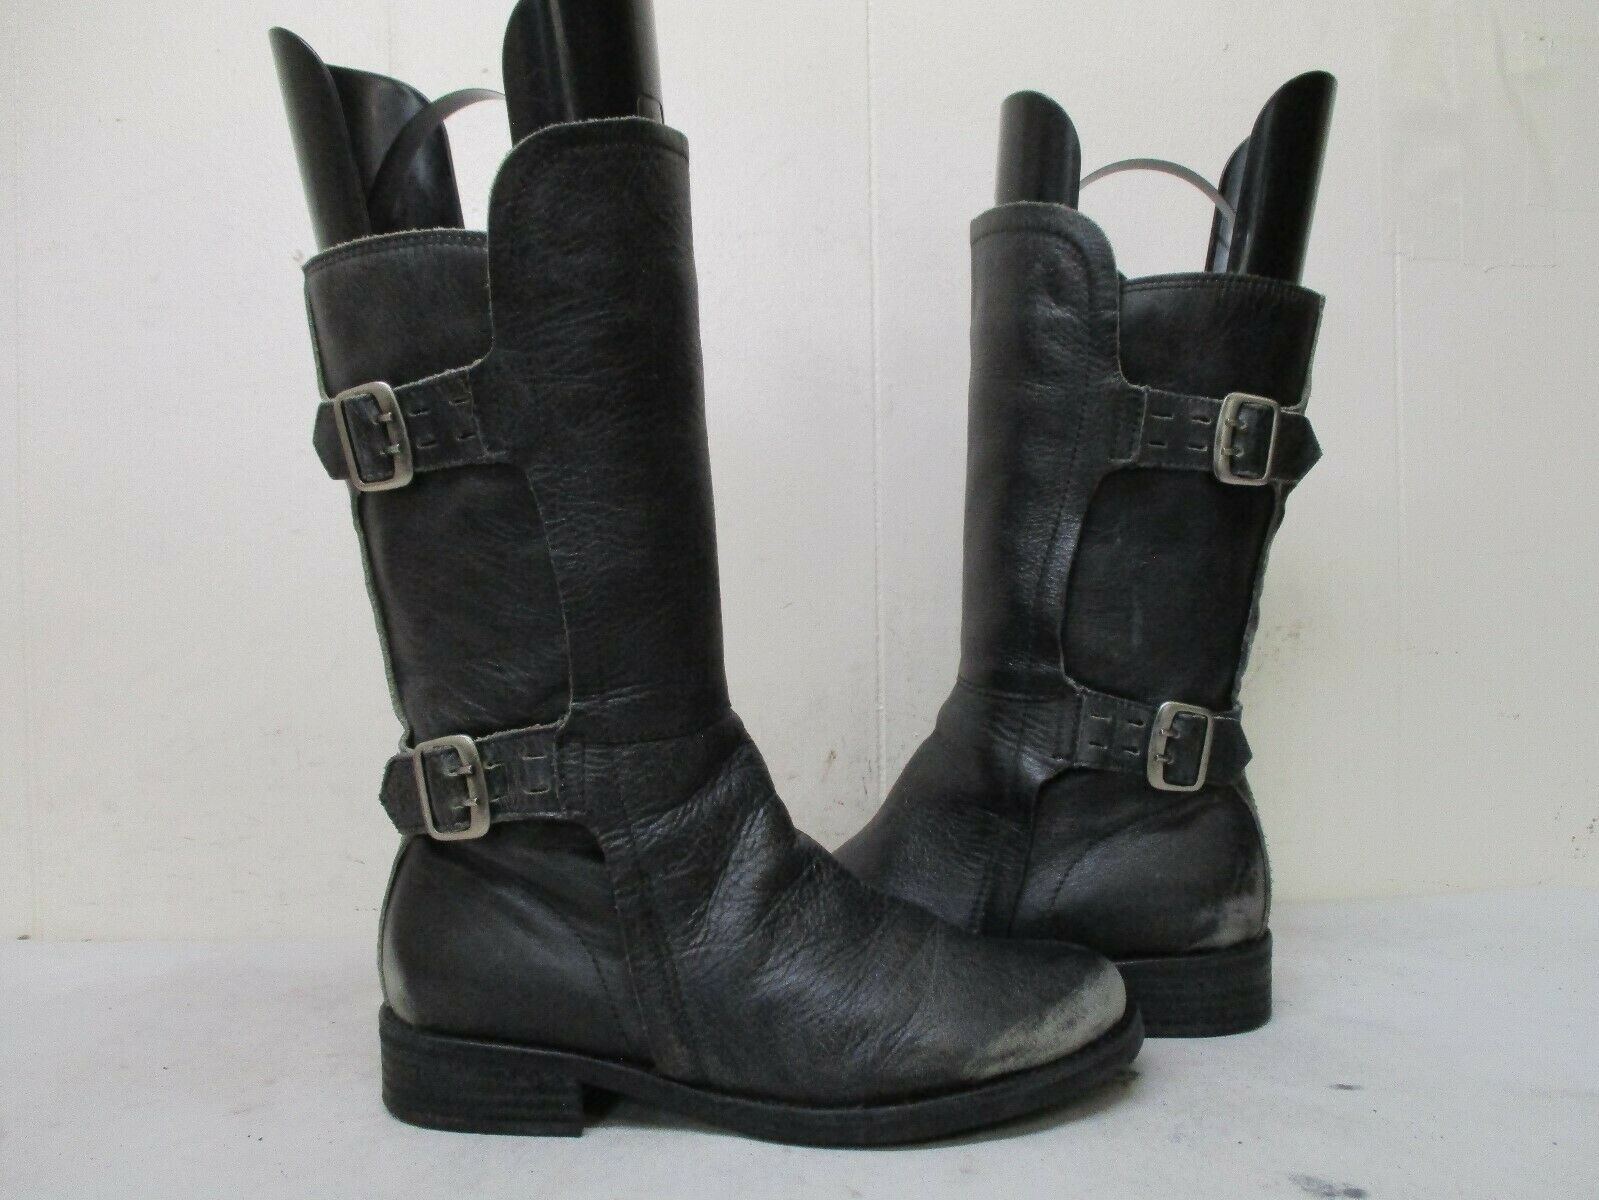 Matisse Tradition Distressed Black Leather Buckle Biker Boots Womens Size 6 M